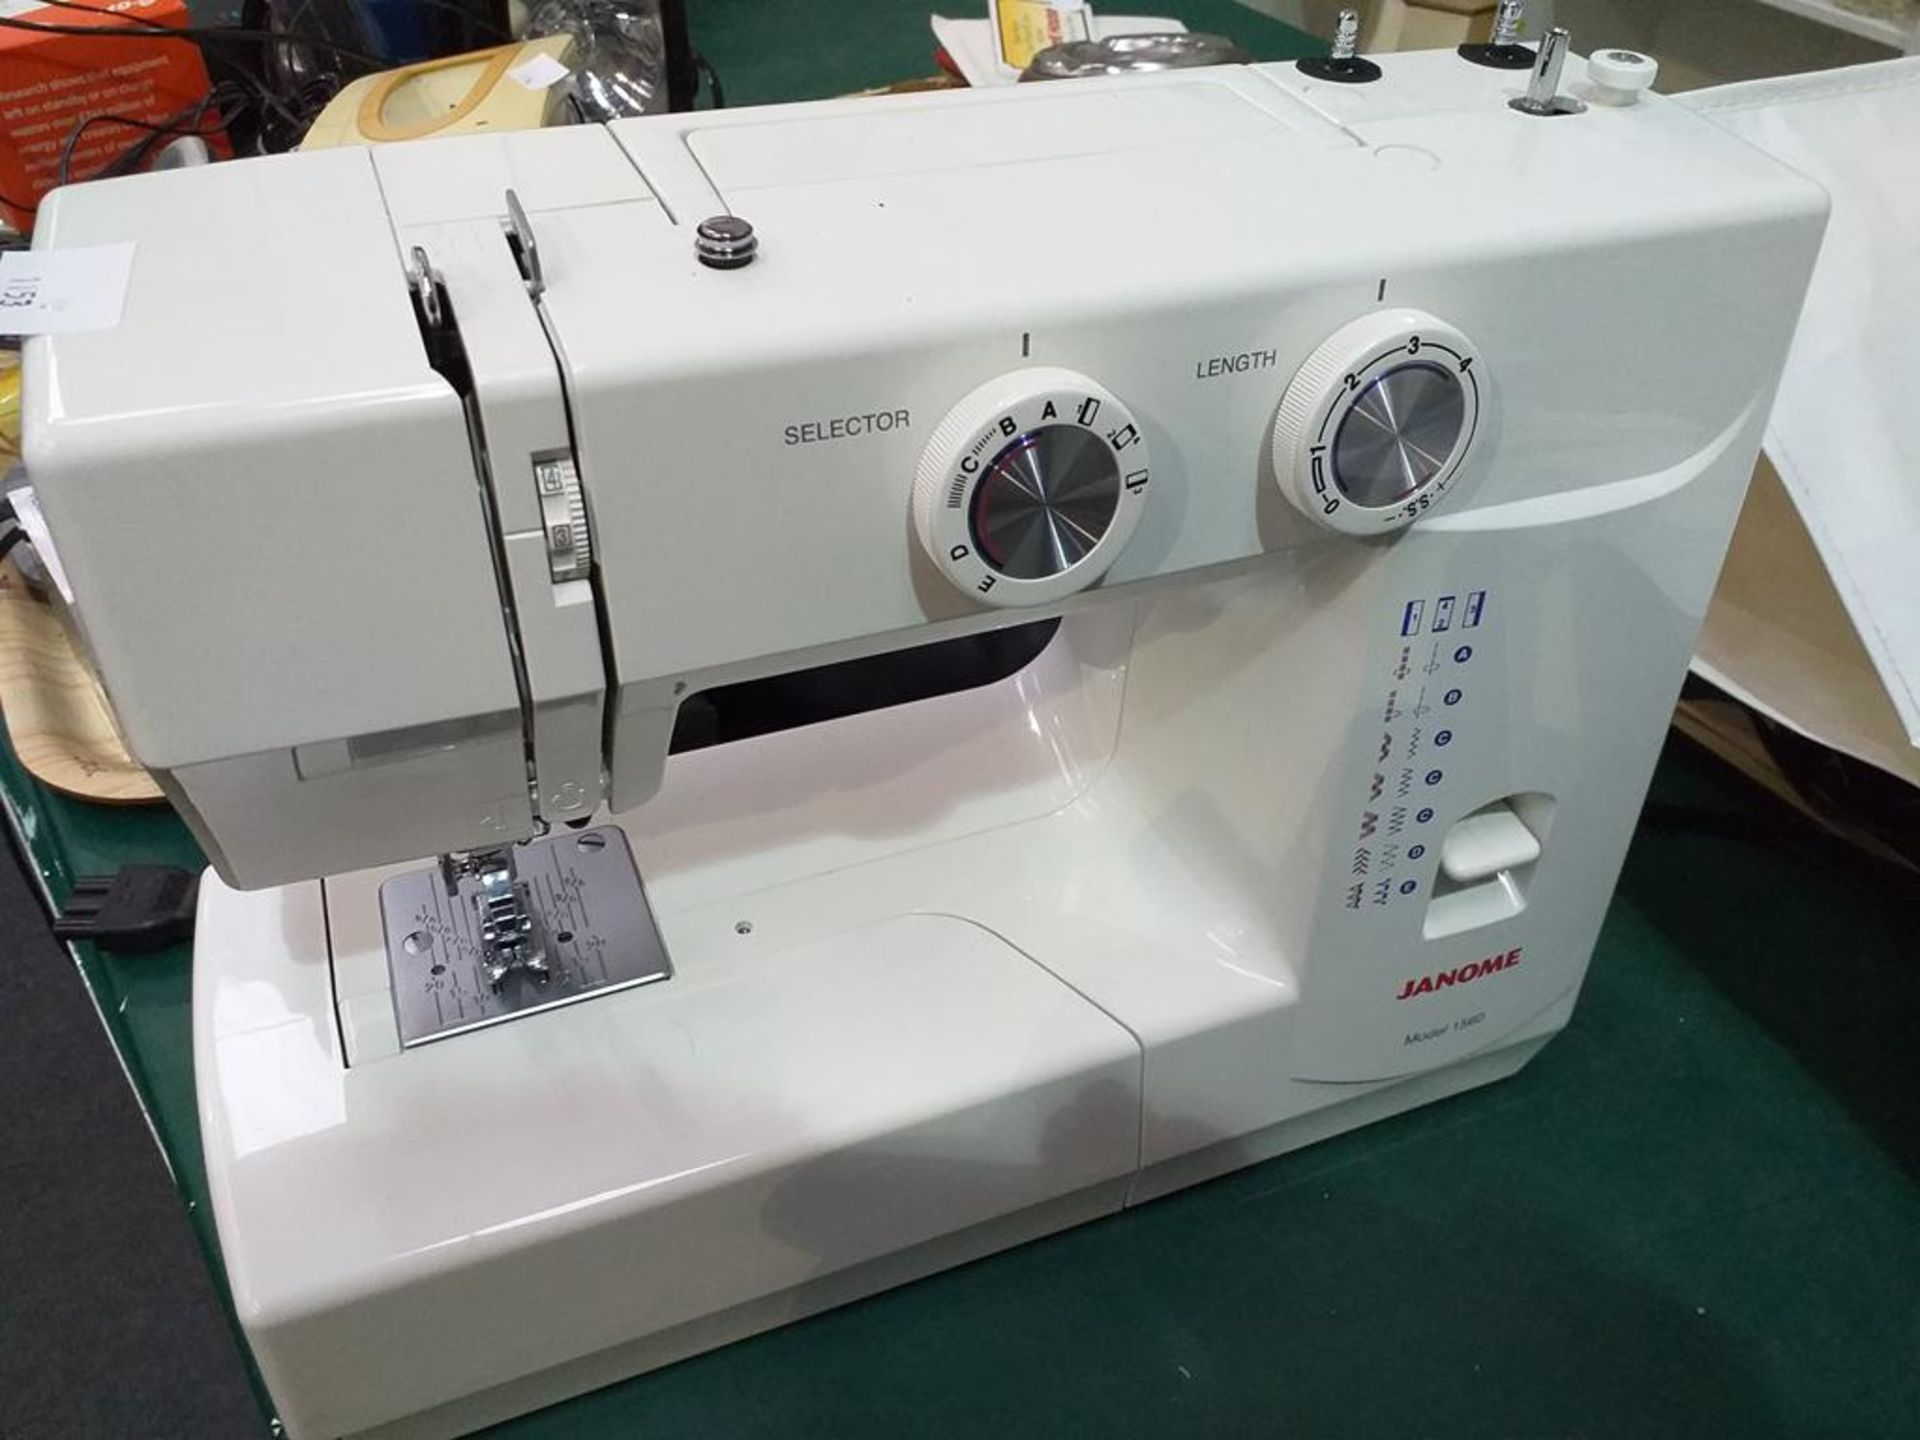 Lot 1153 - Janome Electric Sewing Machine